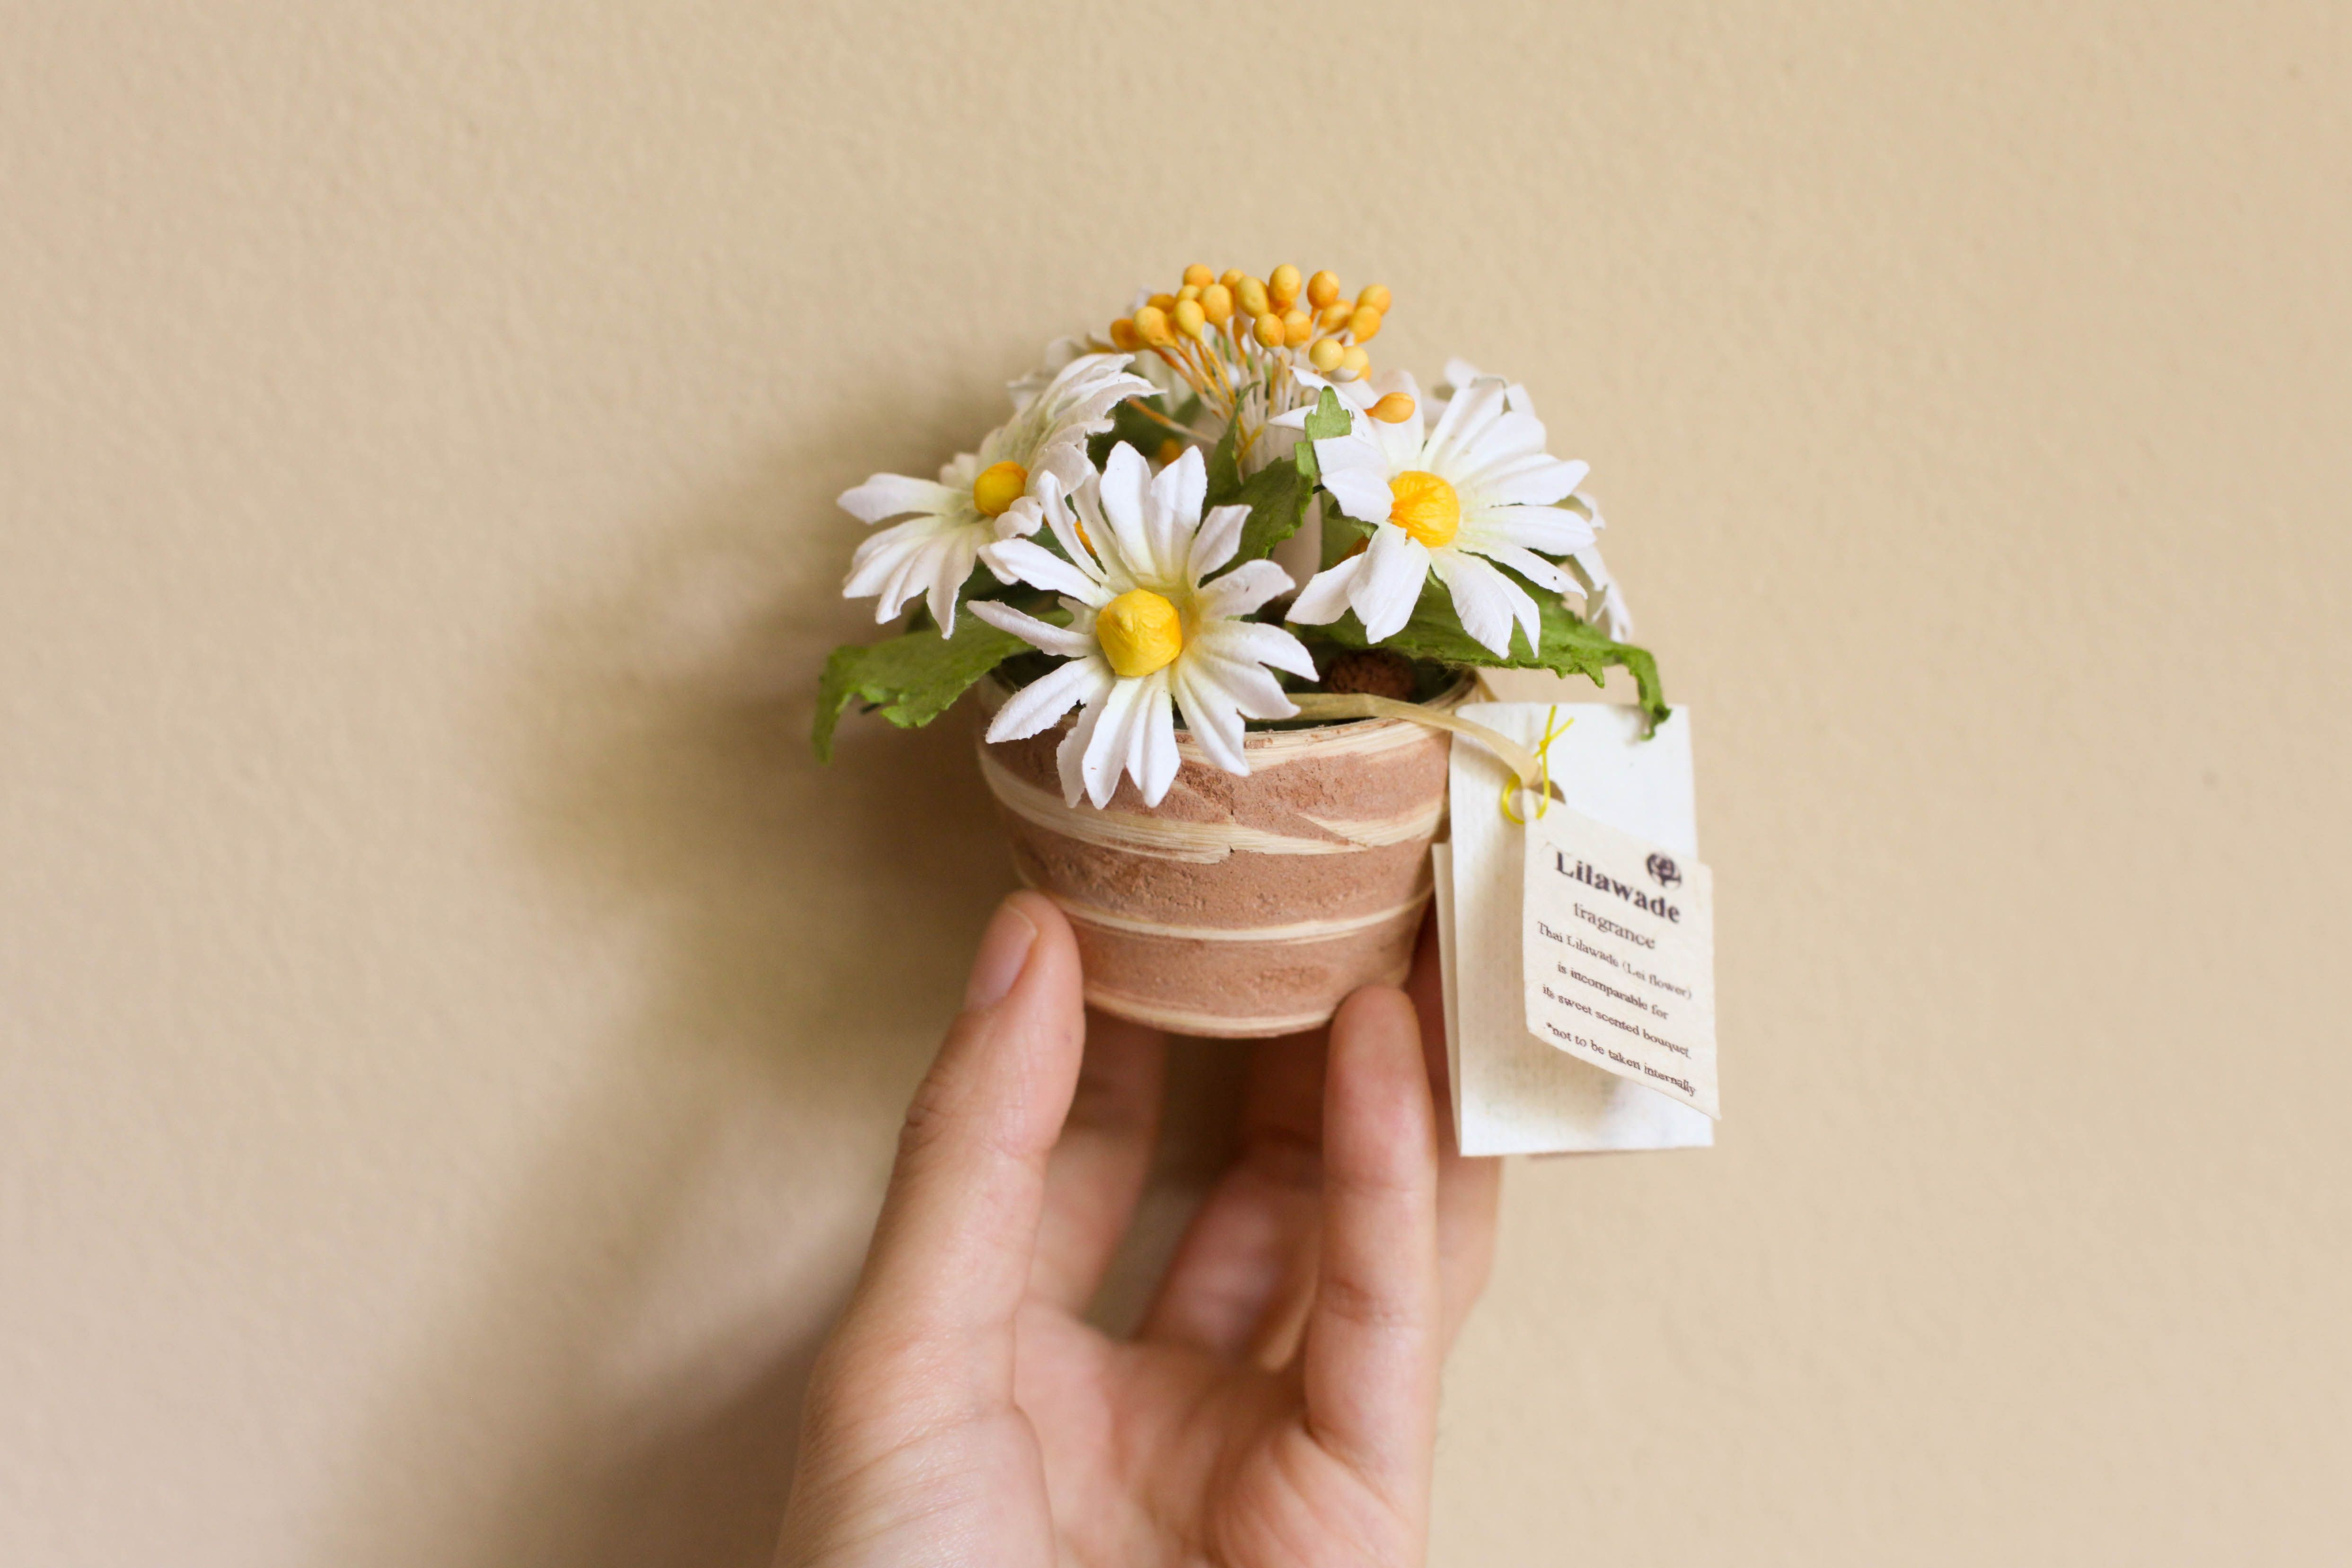 Classy Design Ideas Tiny Flower Pot Paper Flowers Mulberry Bamboo Byhands Pots Bulk Mini Crafts Favors Cakes In Miniaturas